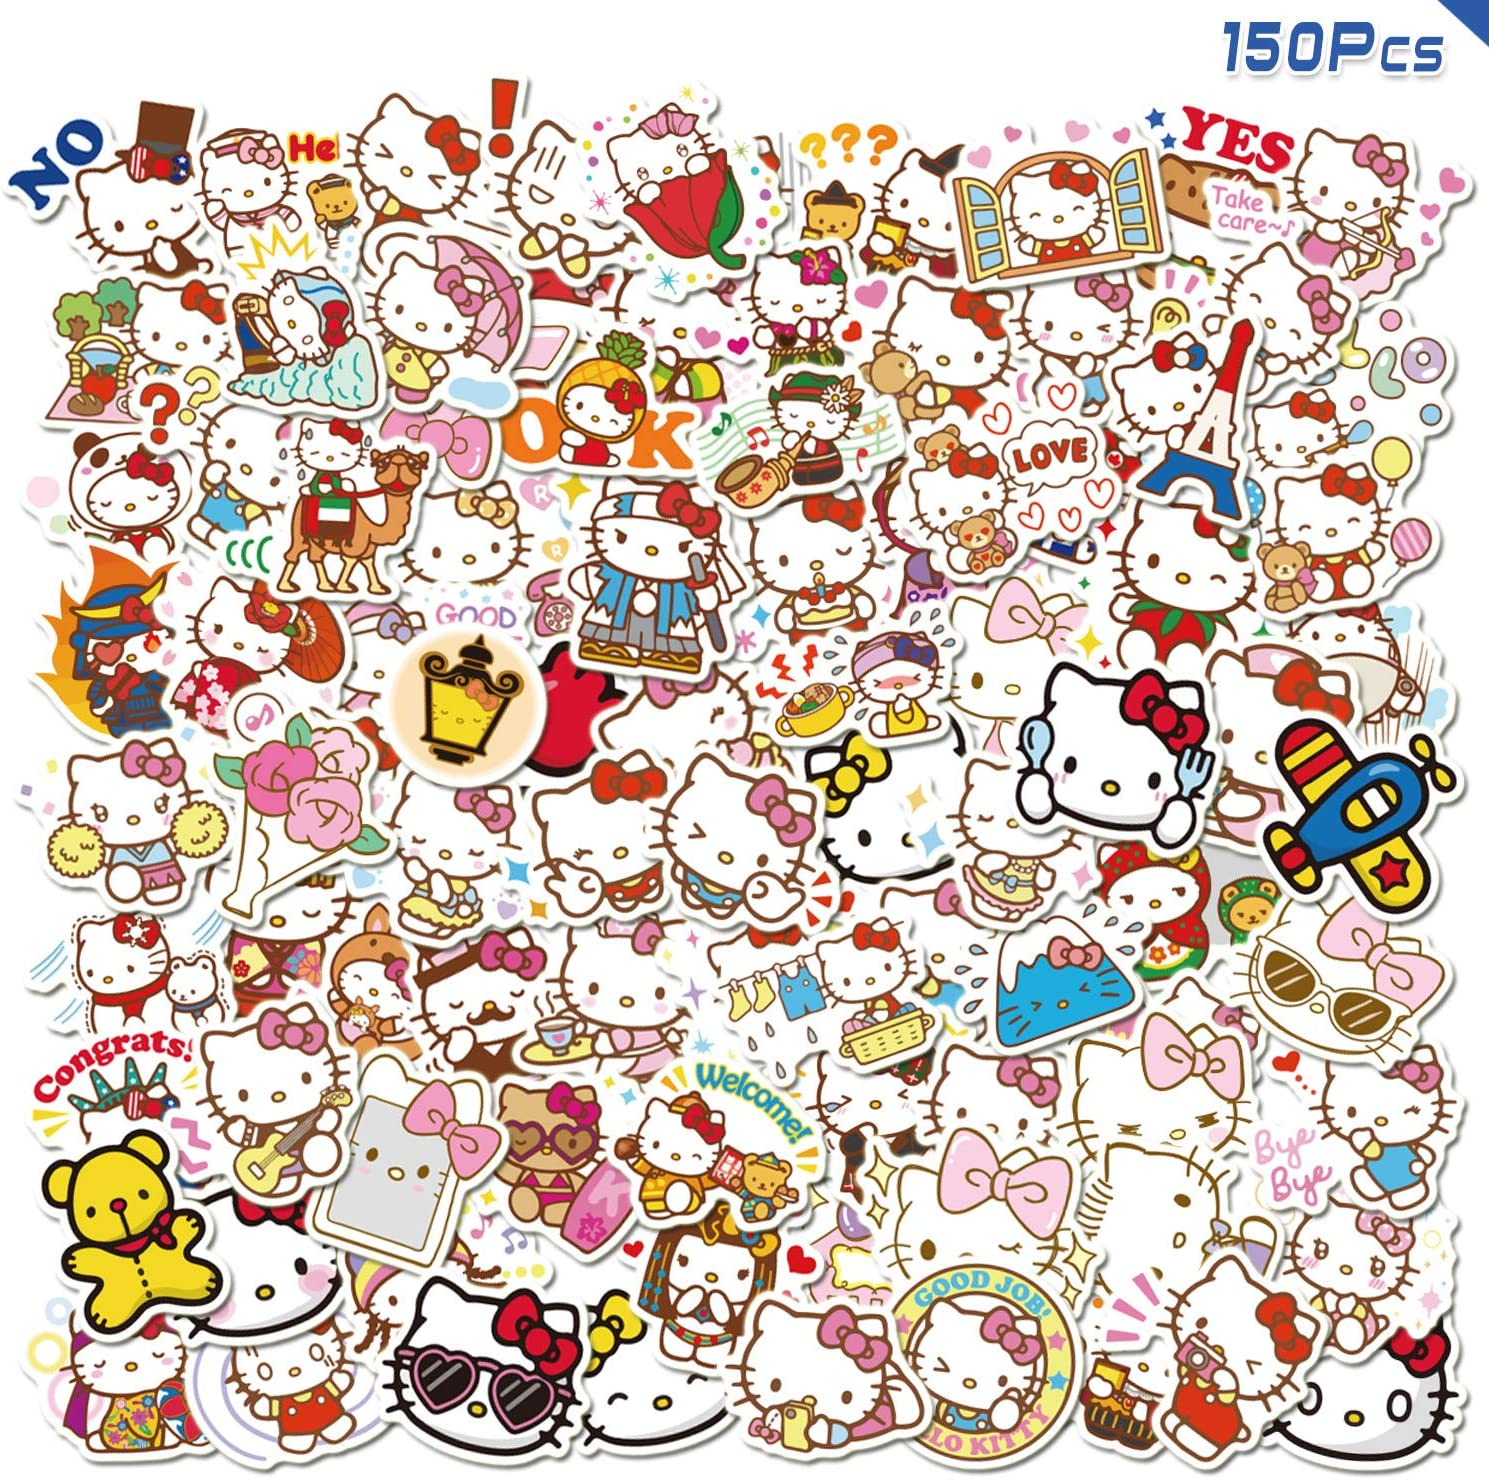 GorgeousZen Hello Kitty Stickers 150pcs Sanrio Anime Vinyl Kawaii KT Cat Sticker for Teen Laptop Skateboard Bicycle Waterproof Decal Car Decoration